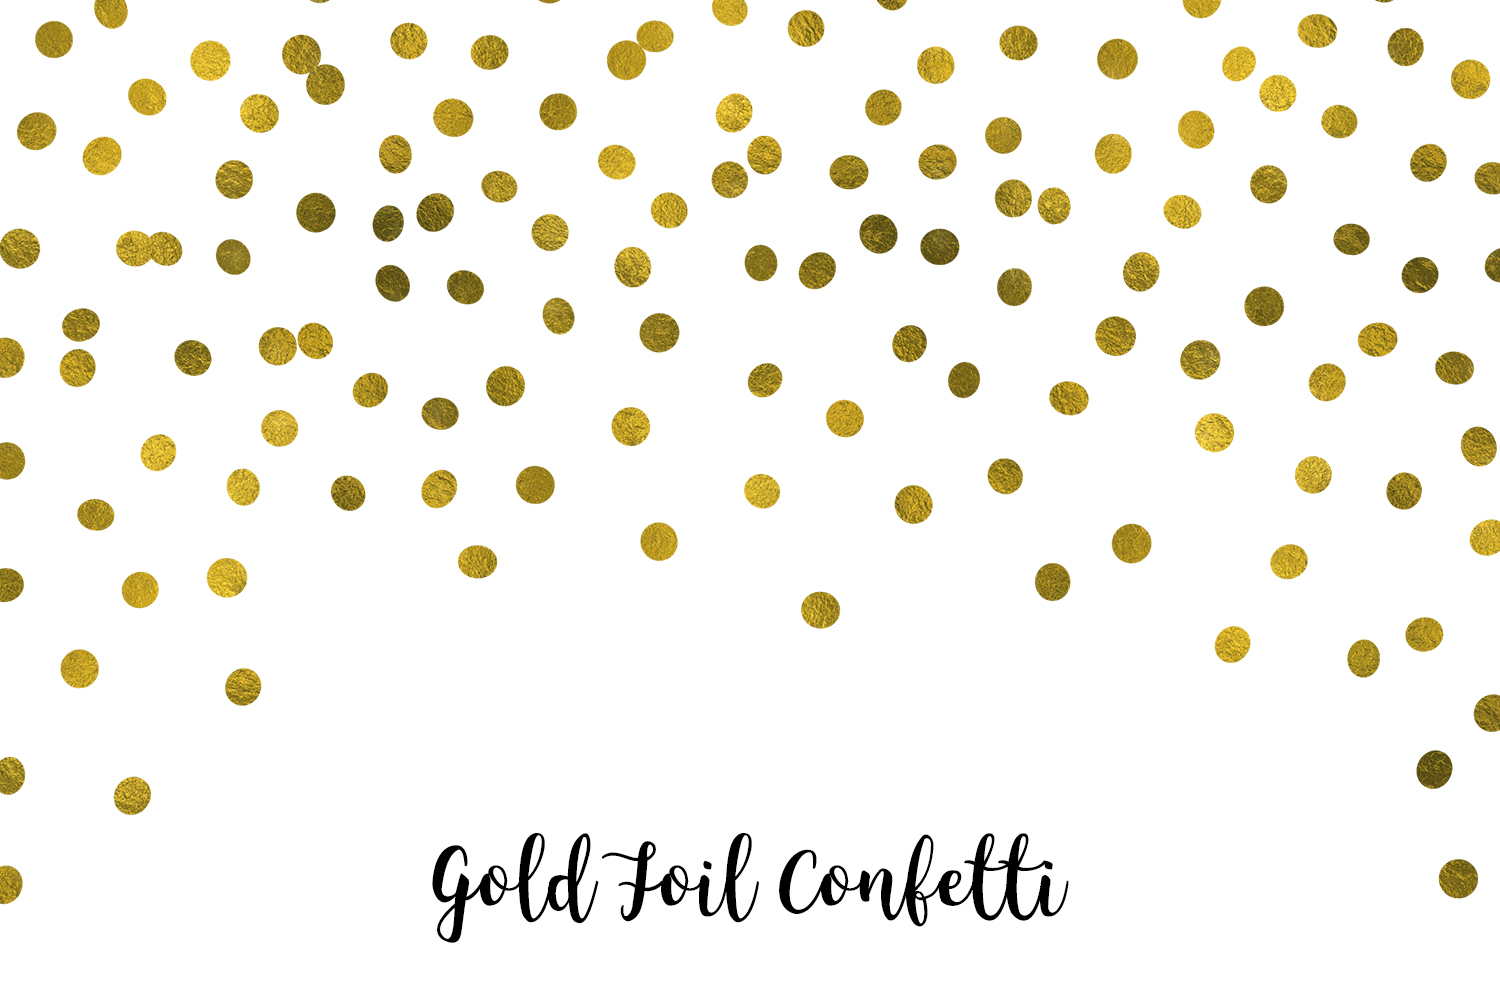 Gold Foil Confetti, Transparent PNG example image 2